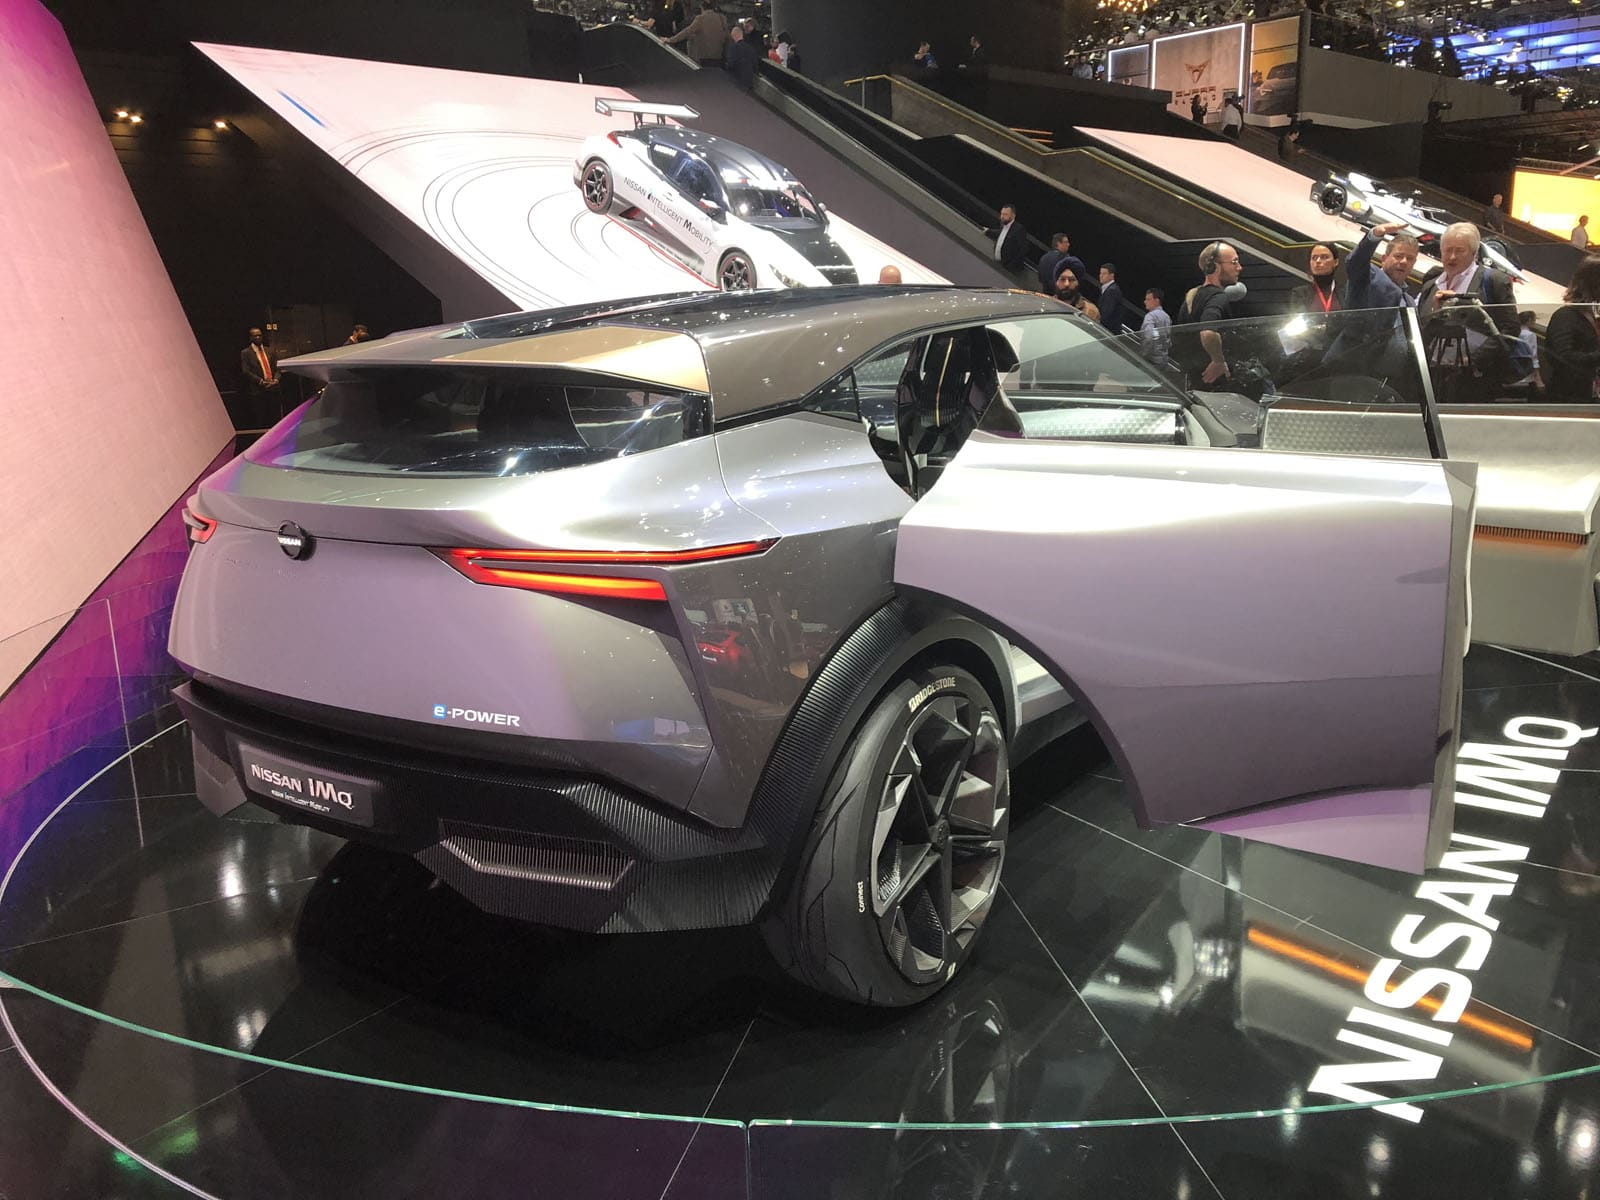 Nissan Of St Charles >> 2020 Nissan Qashqai, IMQ Concept Seen at 2019 Geneva Motor Show - Motor Illustrated